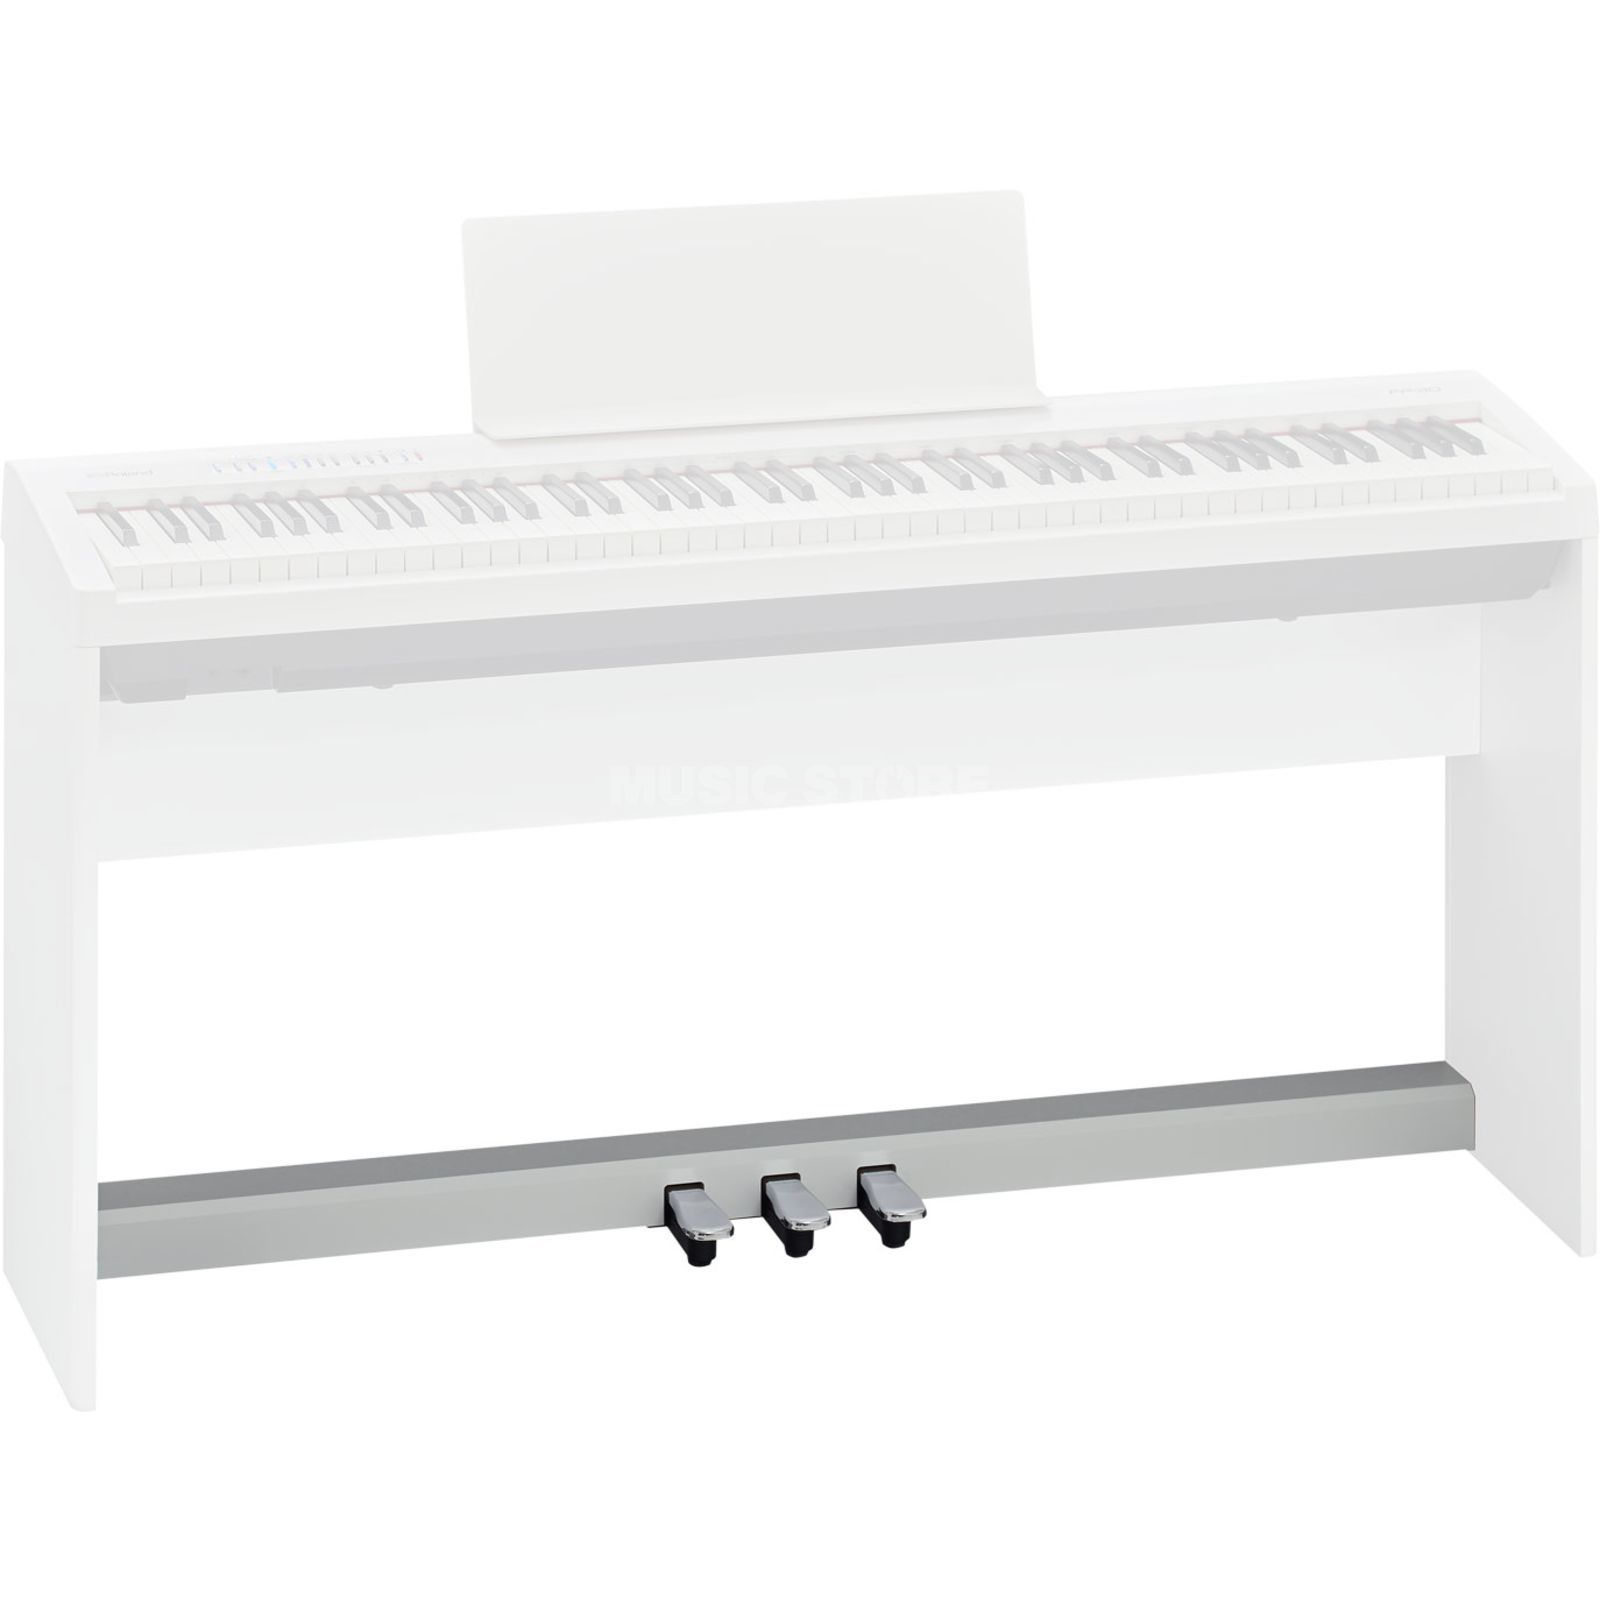 Roland KPD-70 WH Product Image